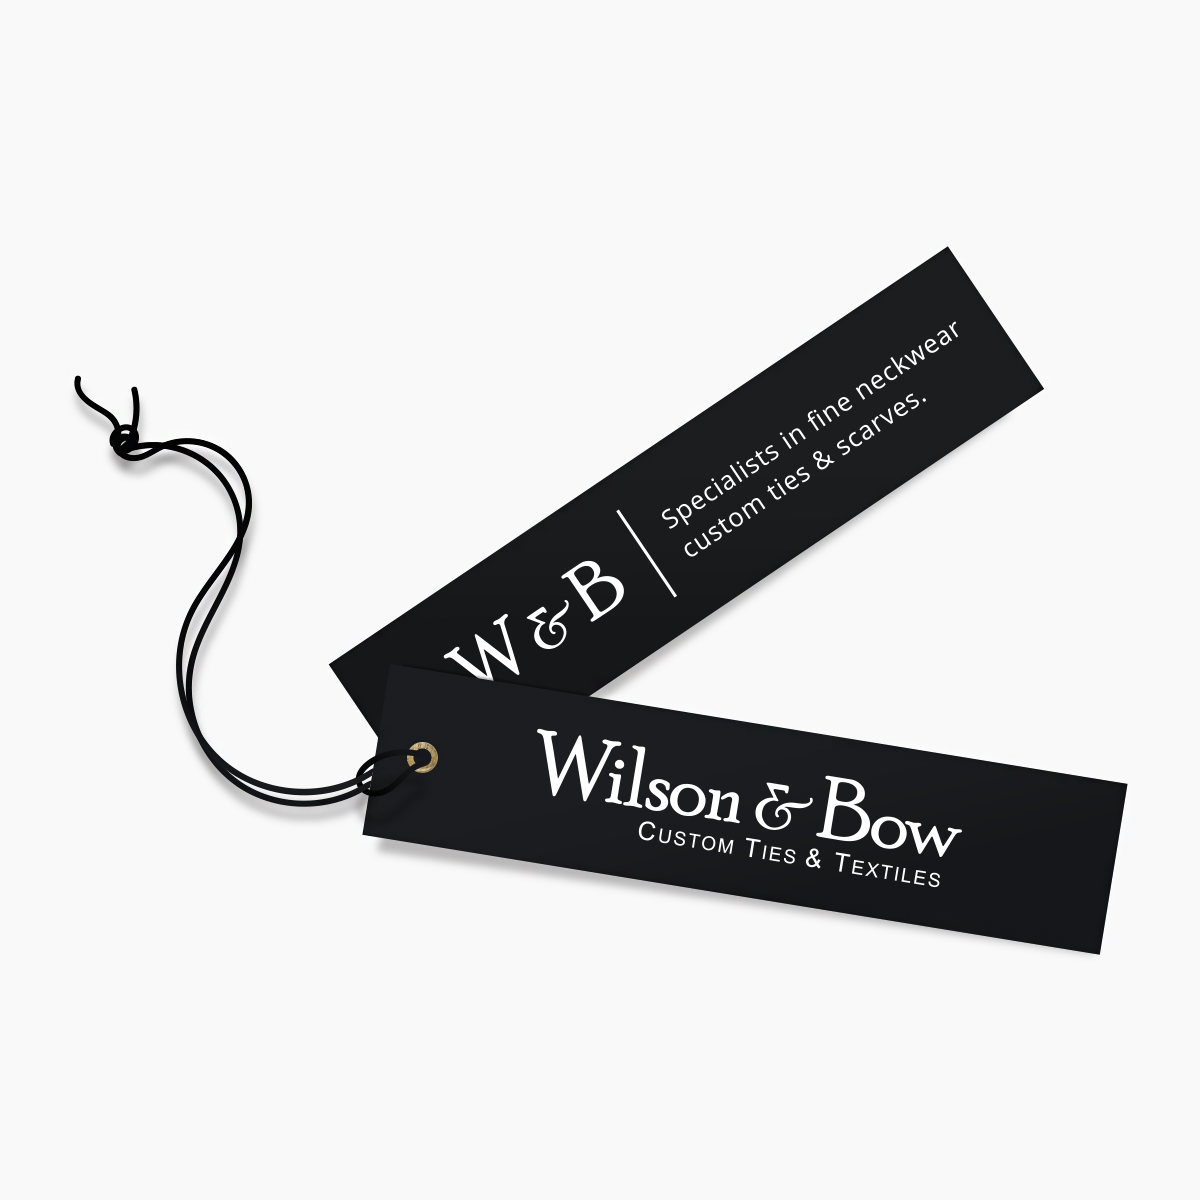 Product-Tags-1200x1200